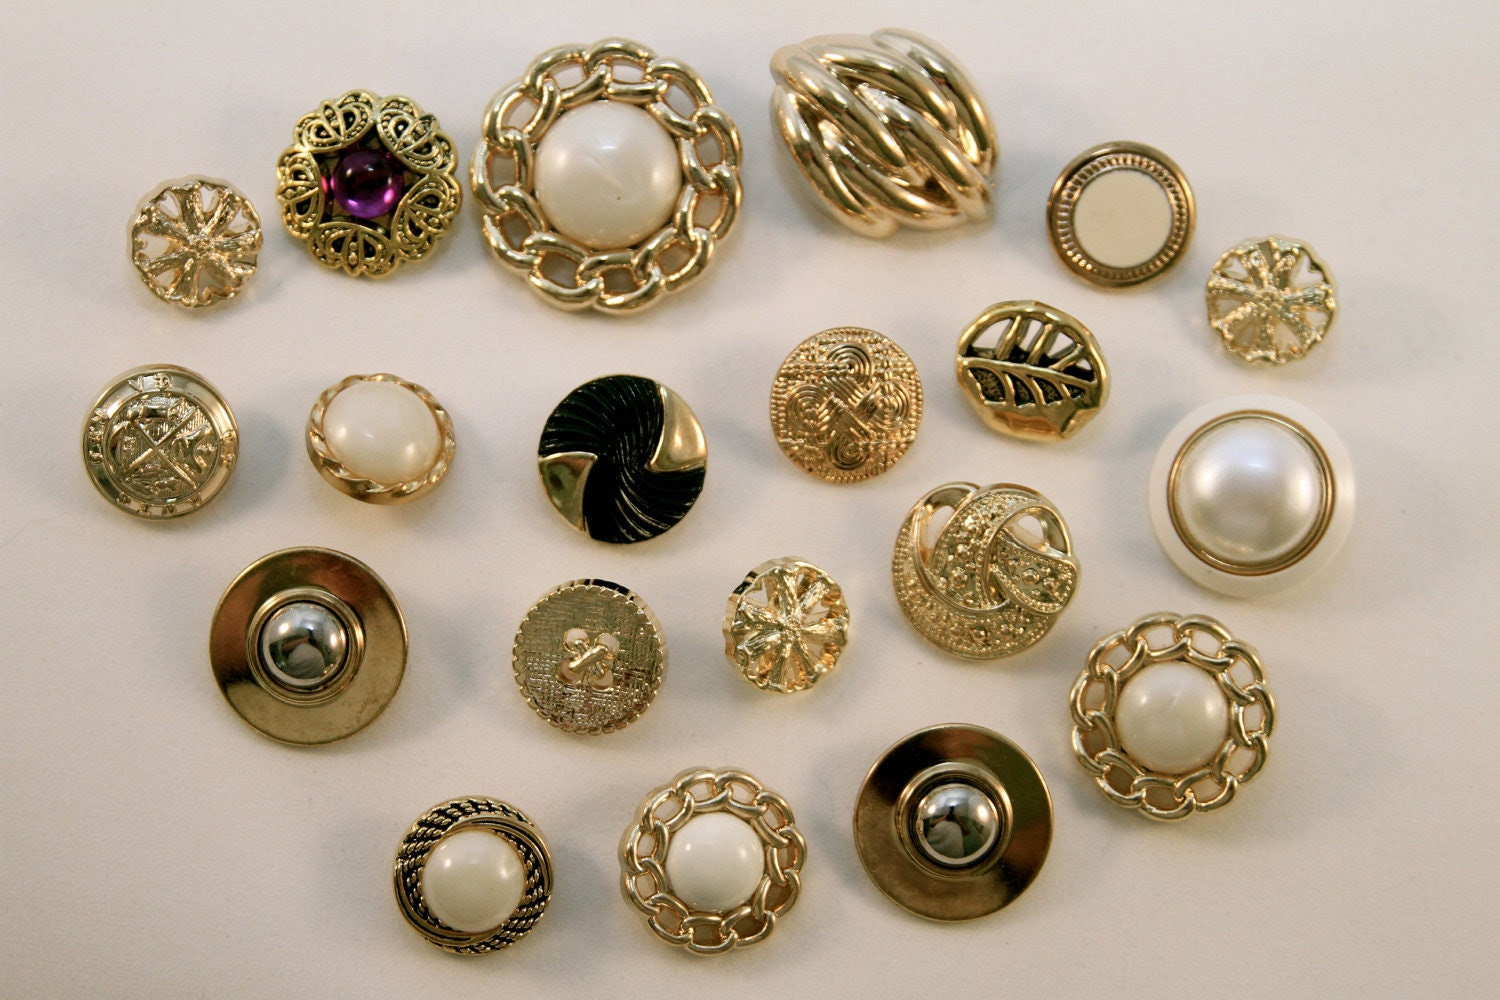 Set of Vintage Style Buttons 20 pc (S2)